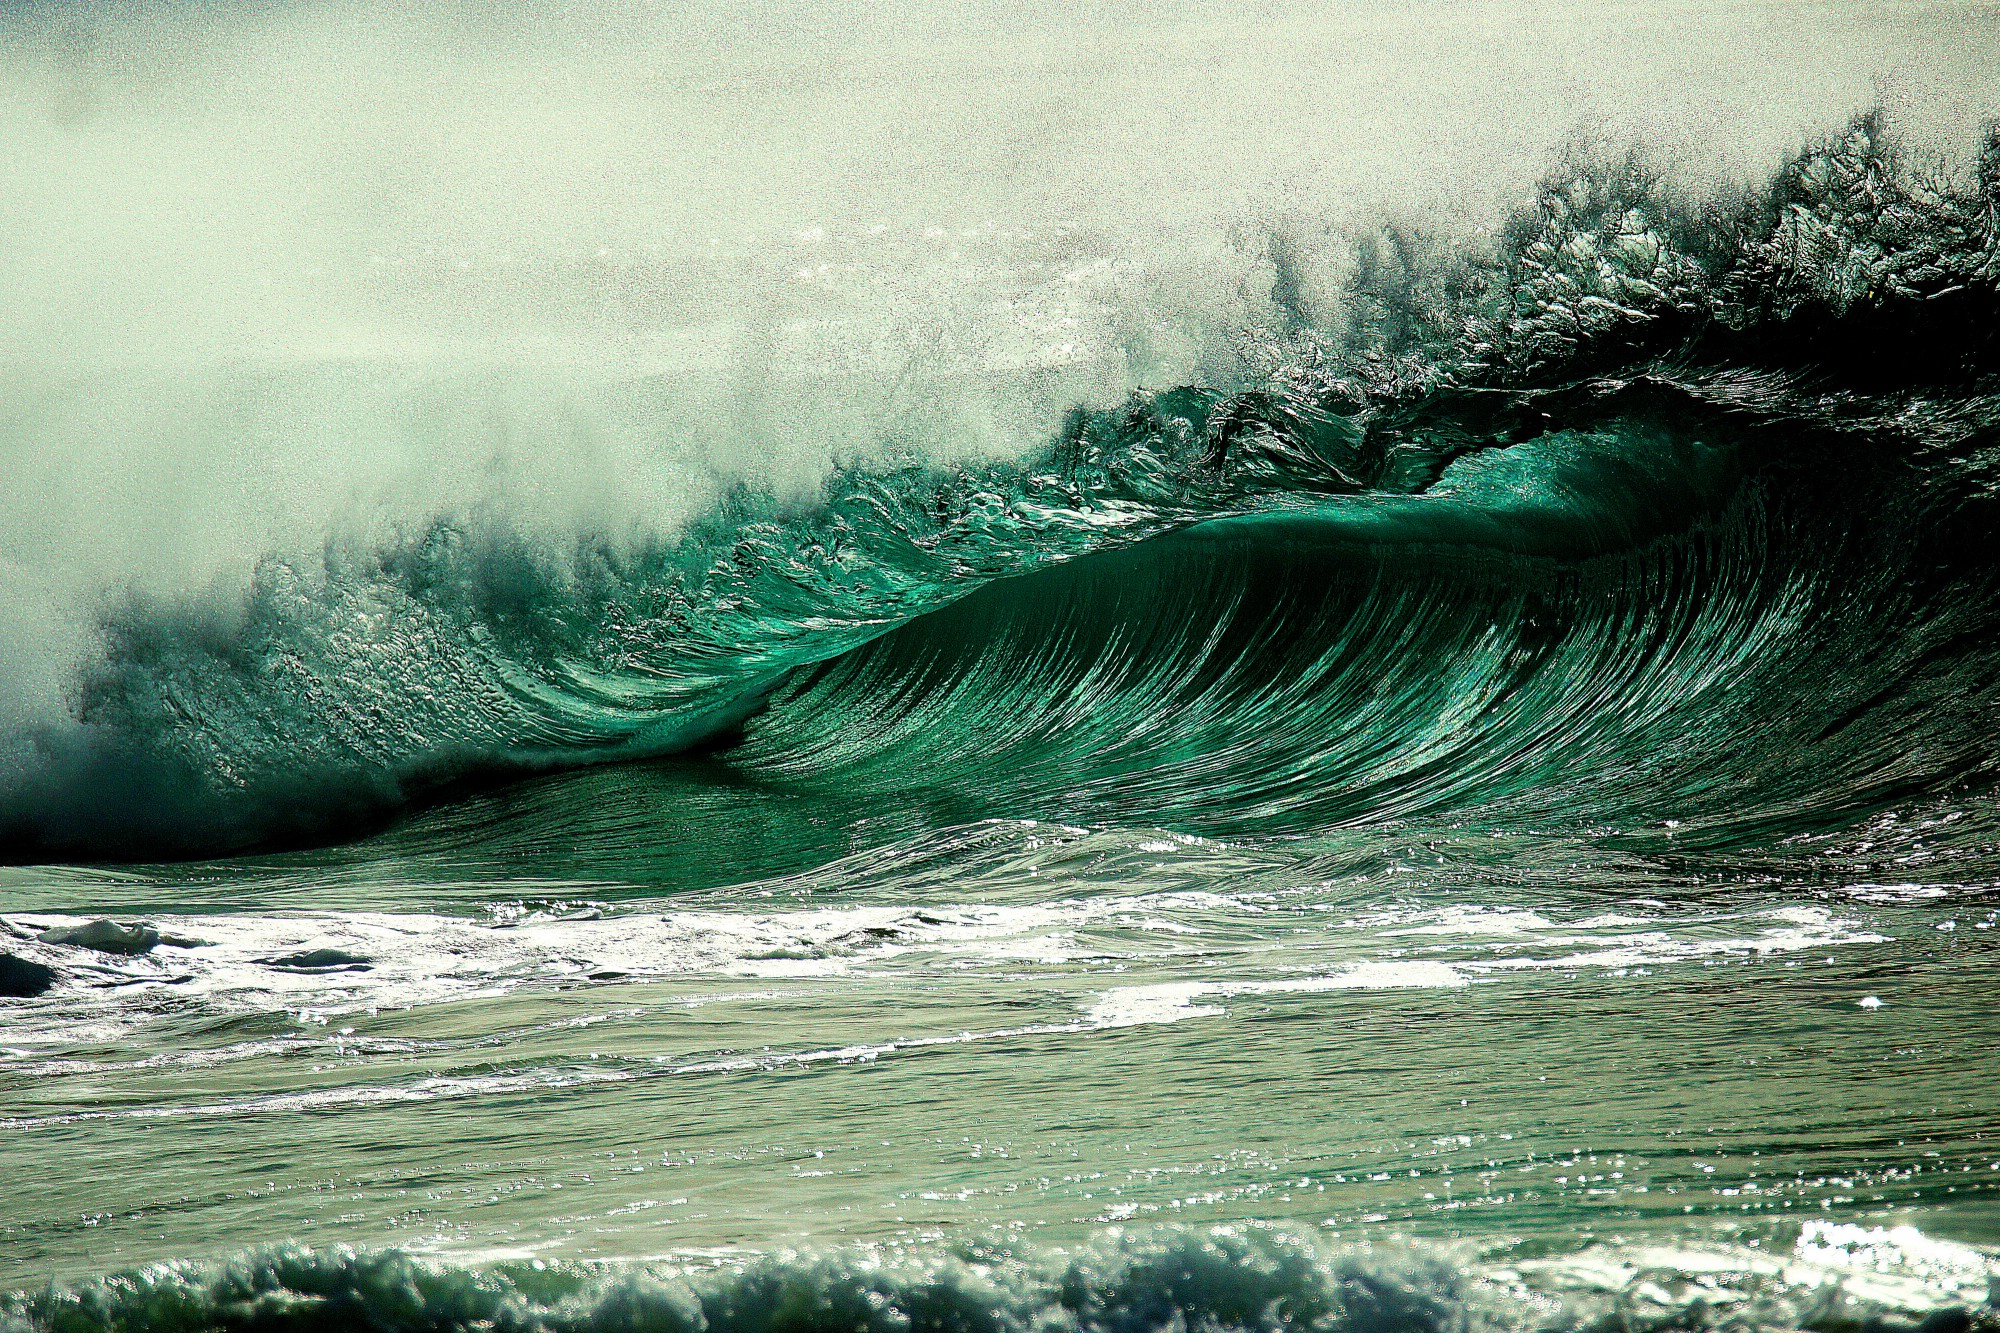 A wave crests before hitting the shore, its roar stilled in the camera's frame, violence captured in a moment of anticipation